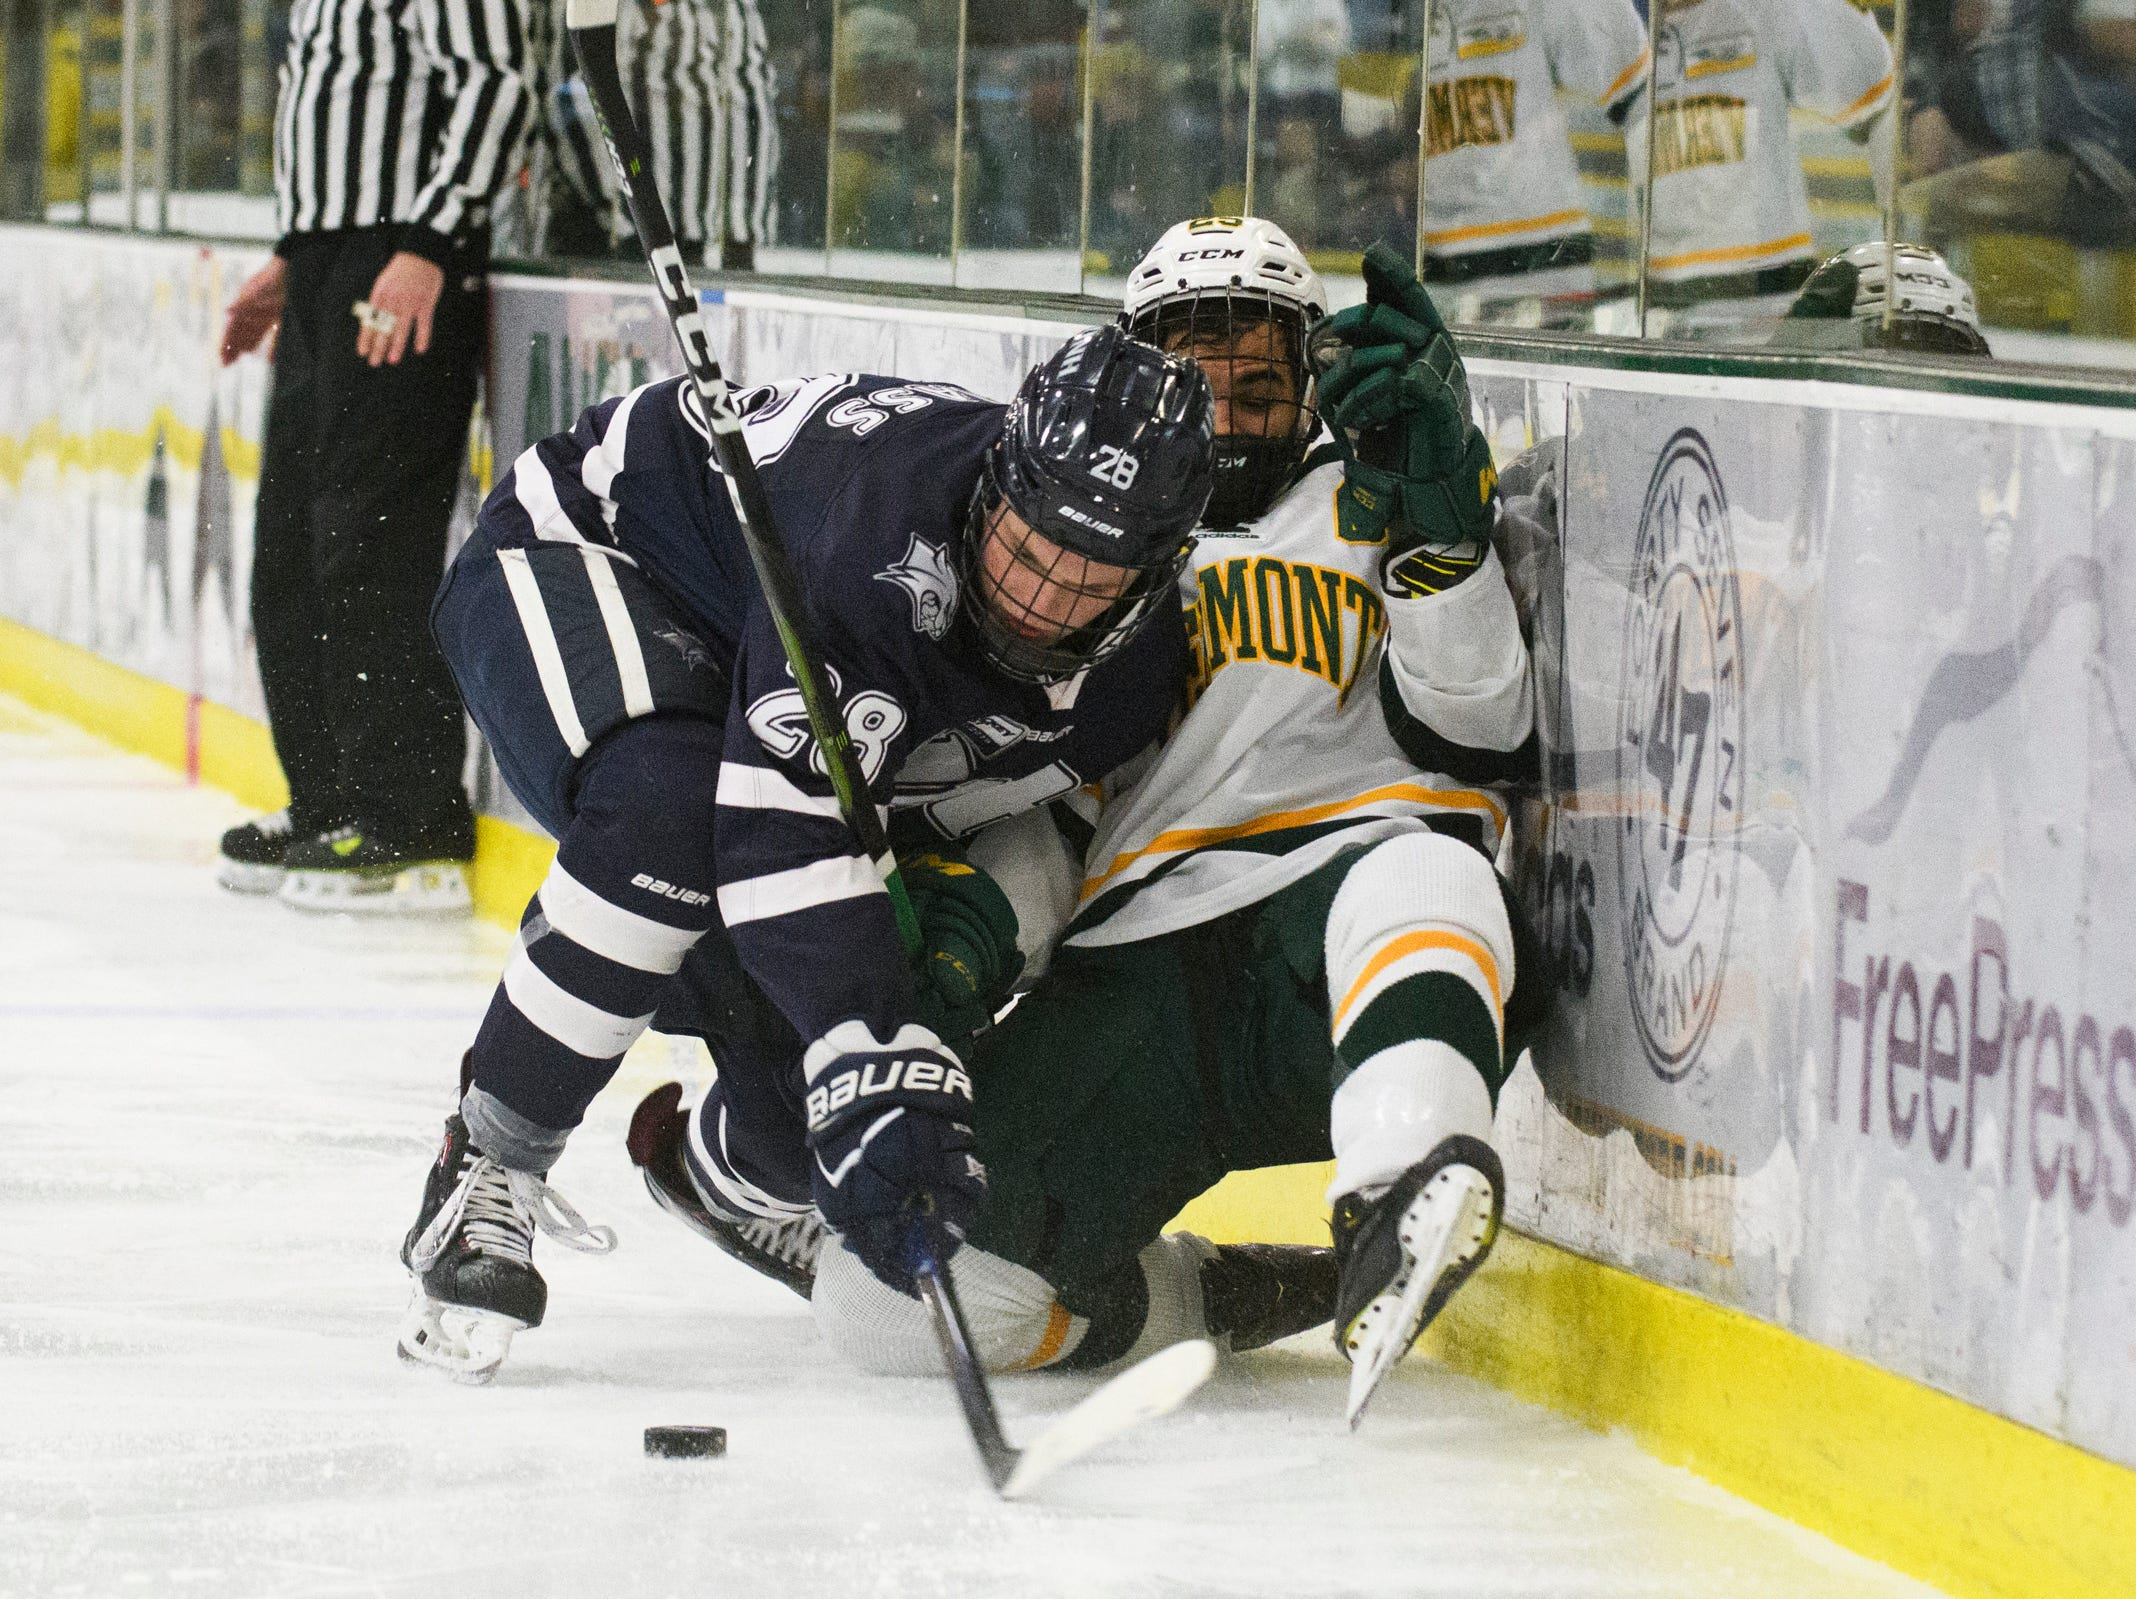 Vermont forward Matt Alvaro (25) and New Hampshire's Benton Maass (28) get tangled up as they battle for the puck during the men's hockey game between the New Hampshire Wildcats and the Vermont Catamounts at Gutterson Field House on Friday night February 8, 2019 in Burlington, Vermont.